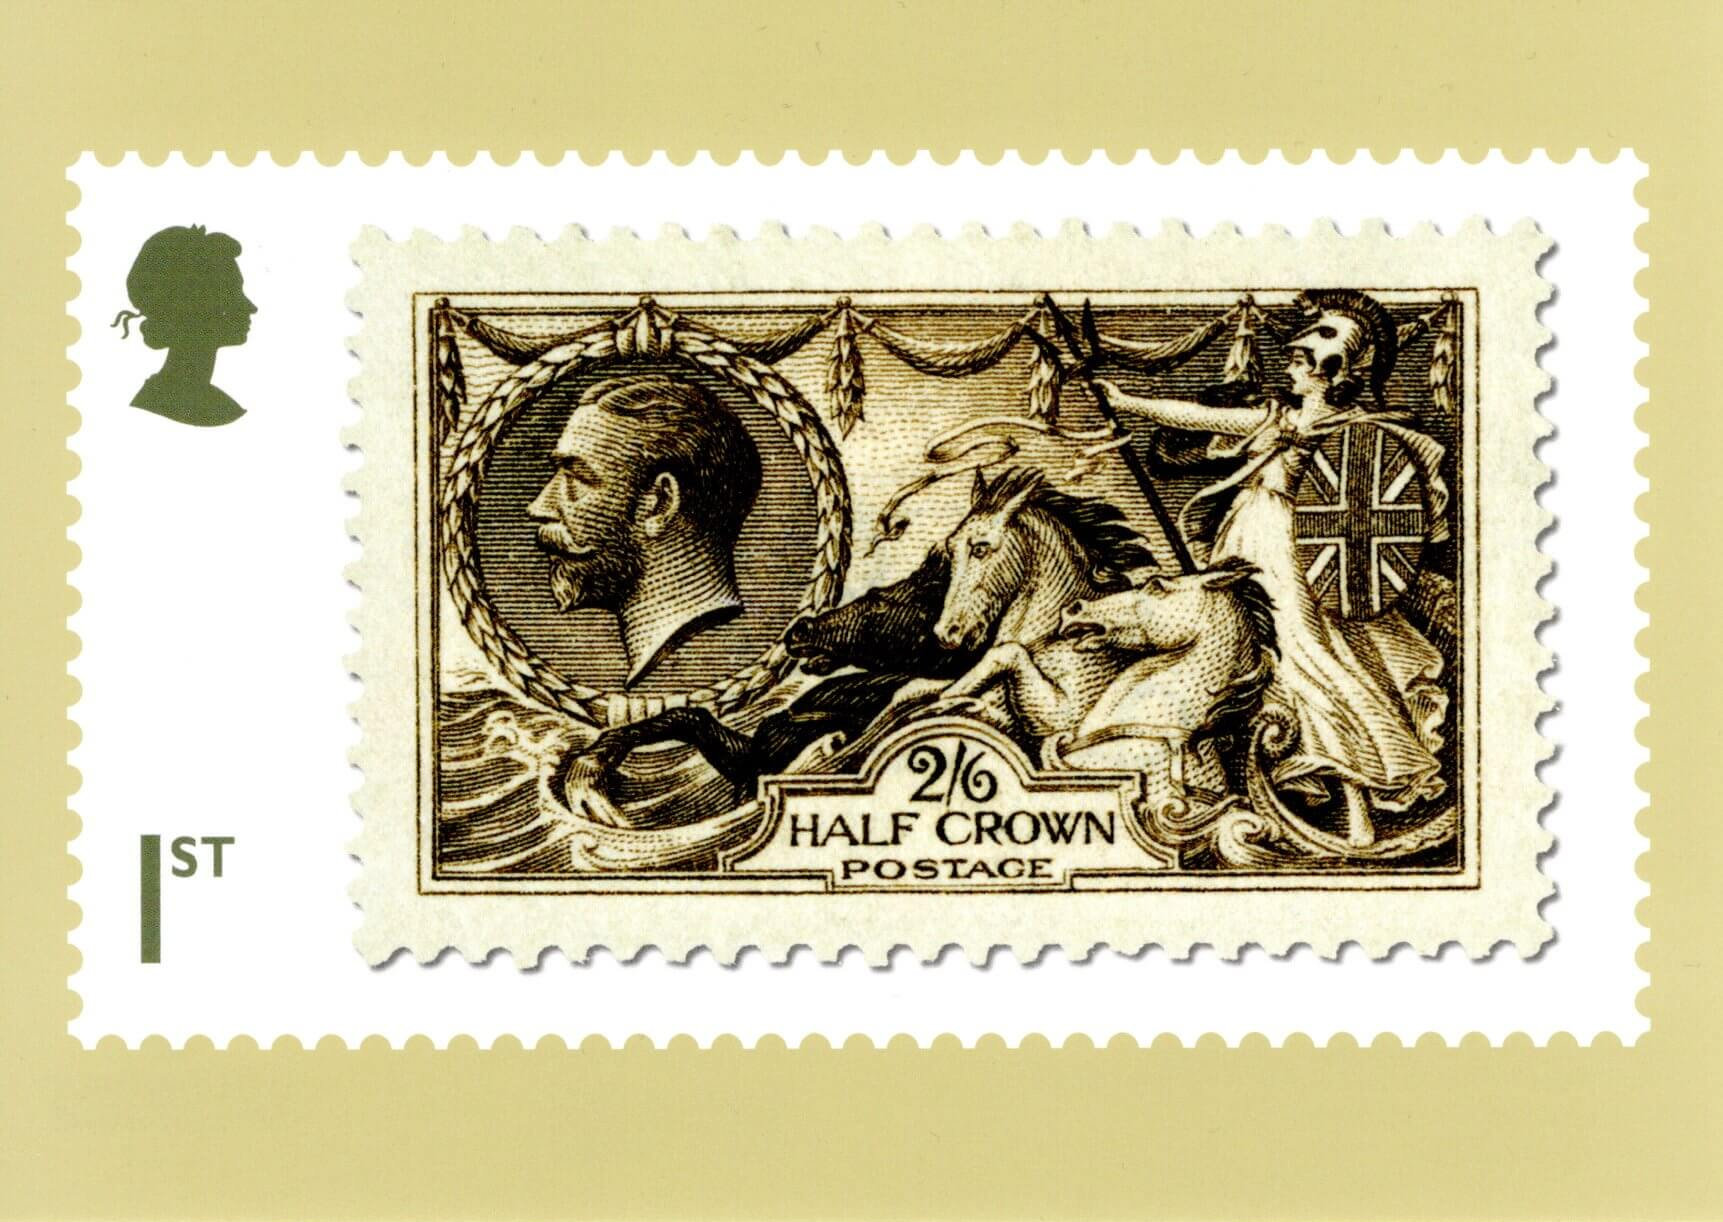 Great Britain - Stamp Classics (January 15, 2019) dark brown 2 shilling 6d King George V of 1913 PHQ card